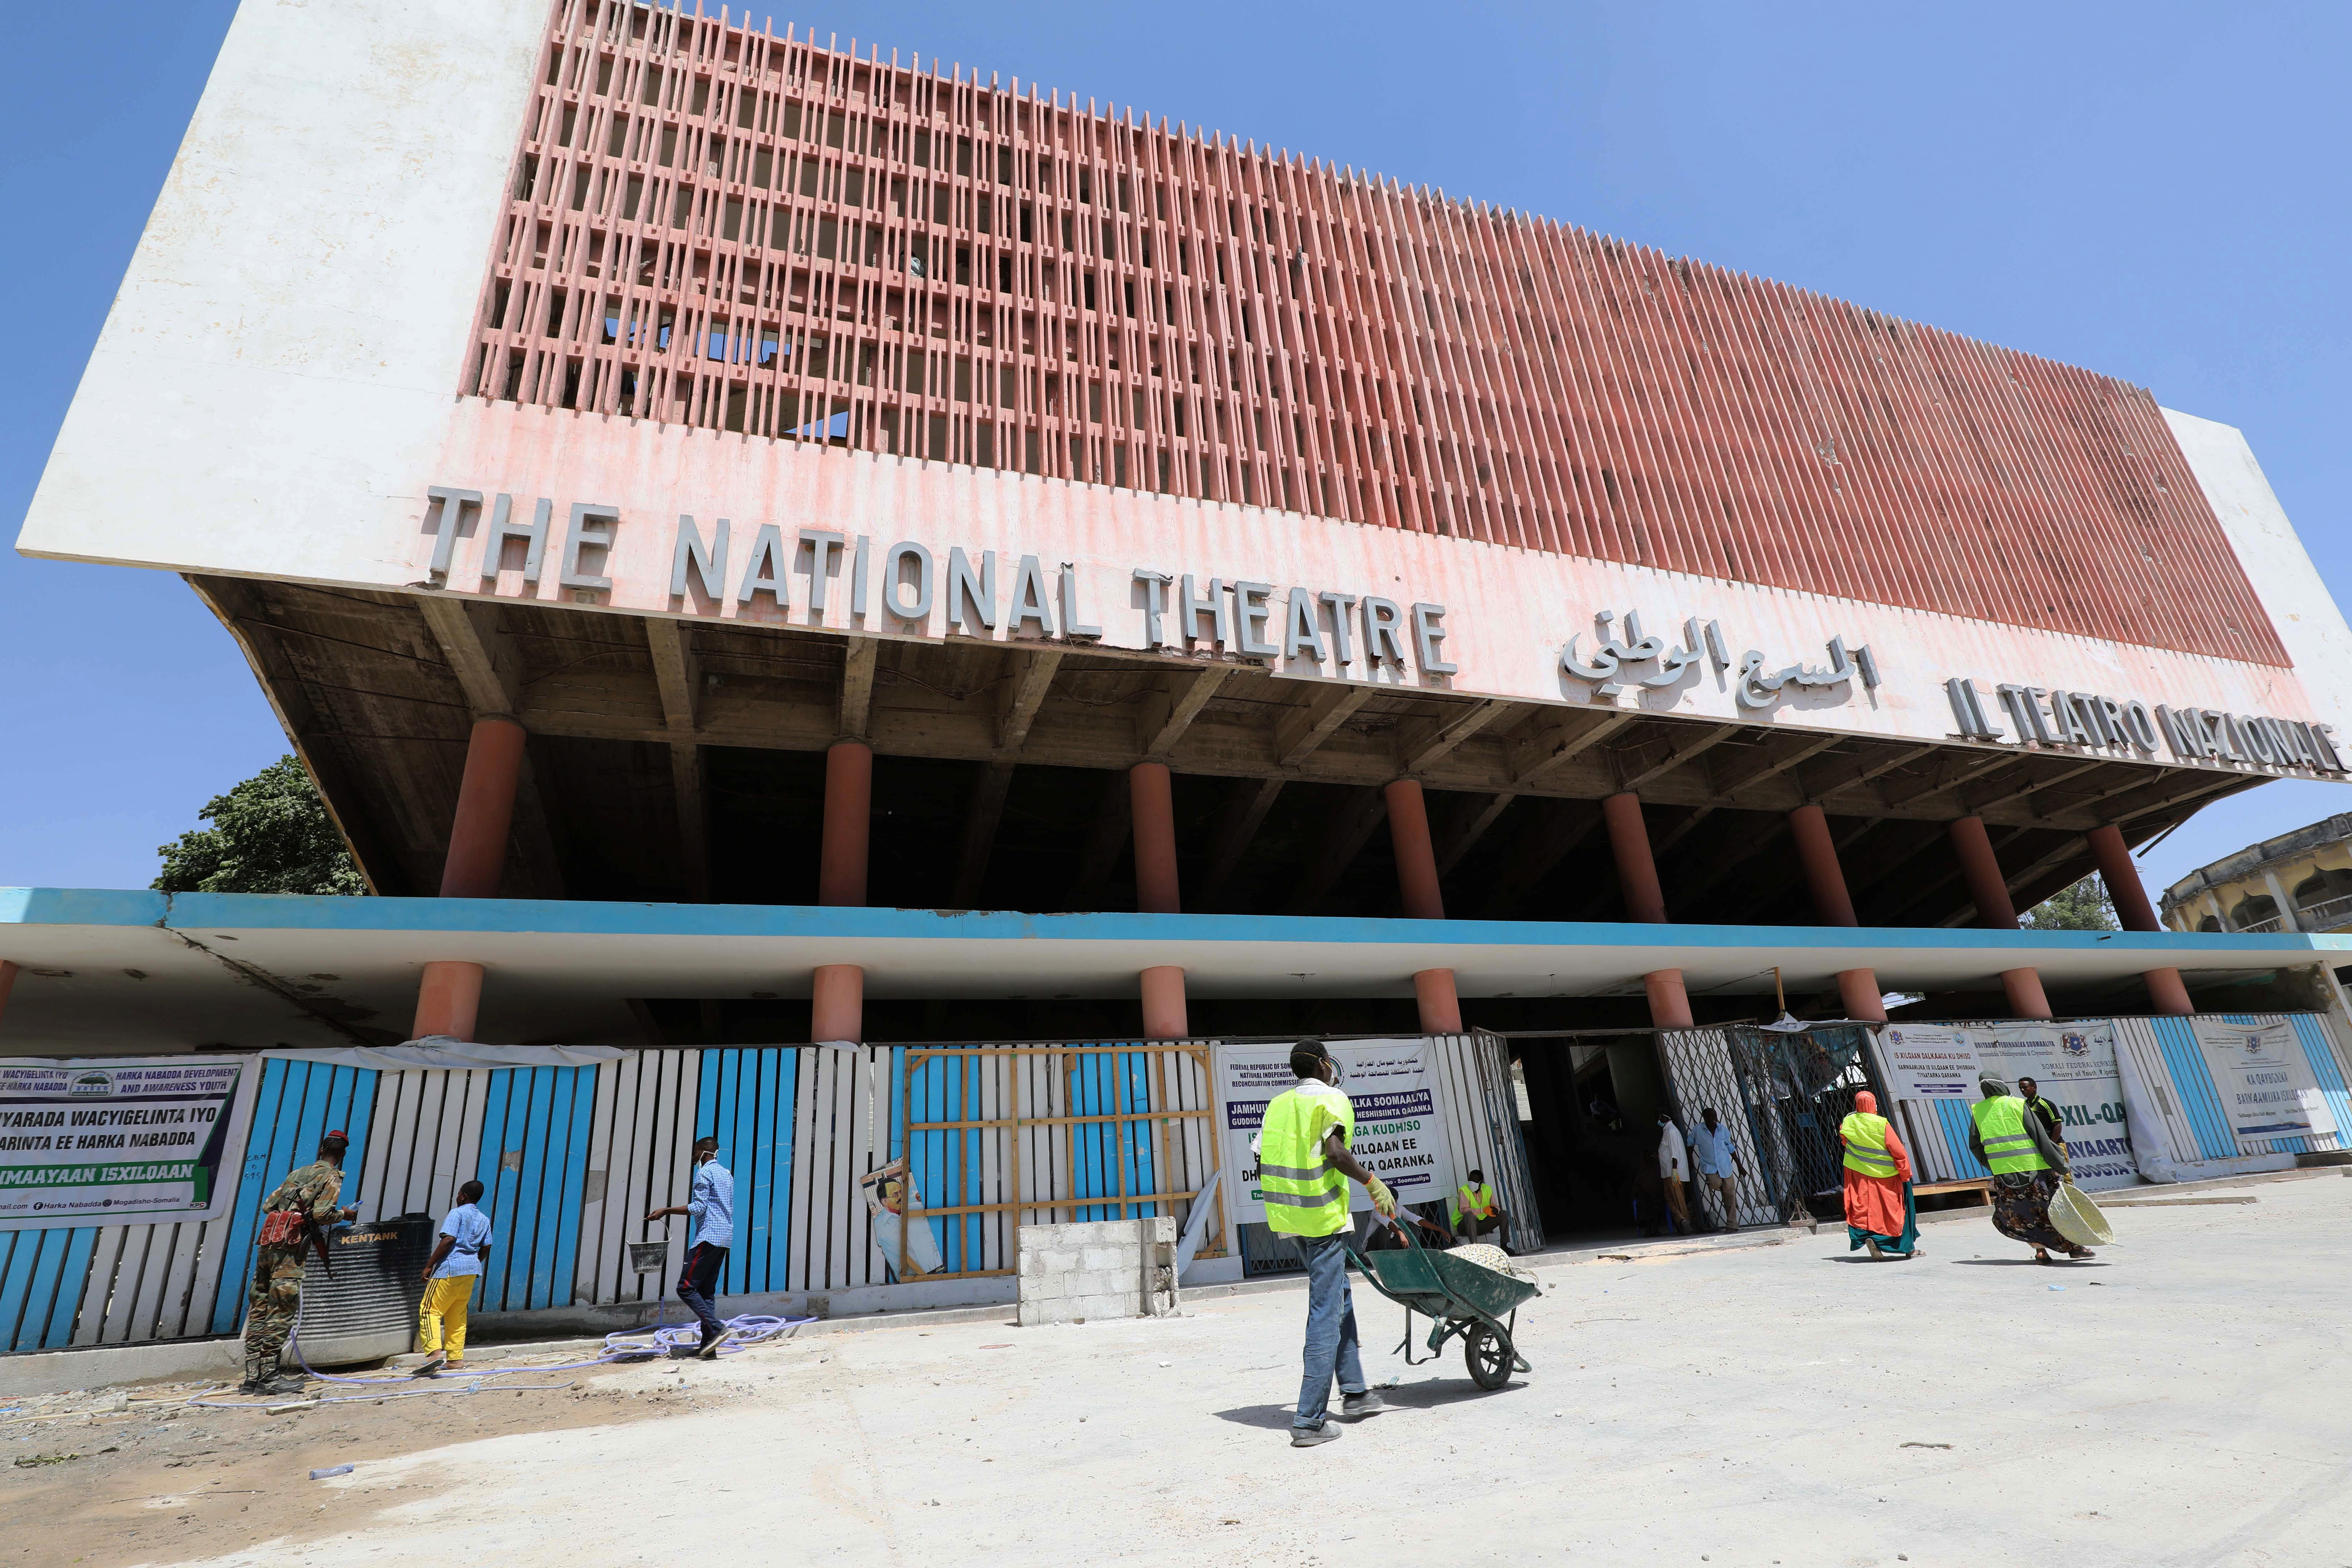 Construction workers are seen during the renovation project of Somalia's National Theatre in Mogadishu, Somalia February 3, 2019. Picture taken February 3, 2019.